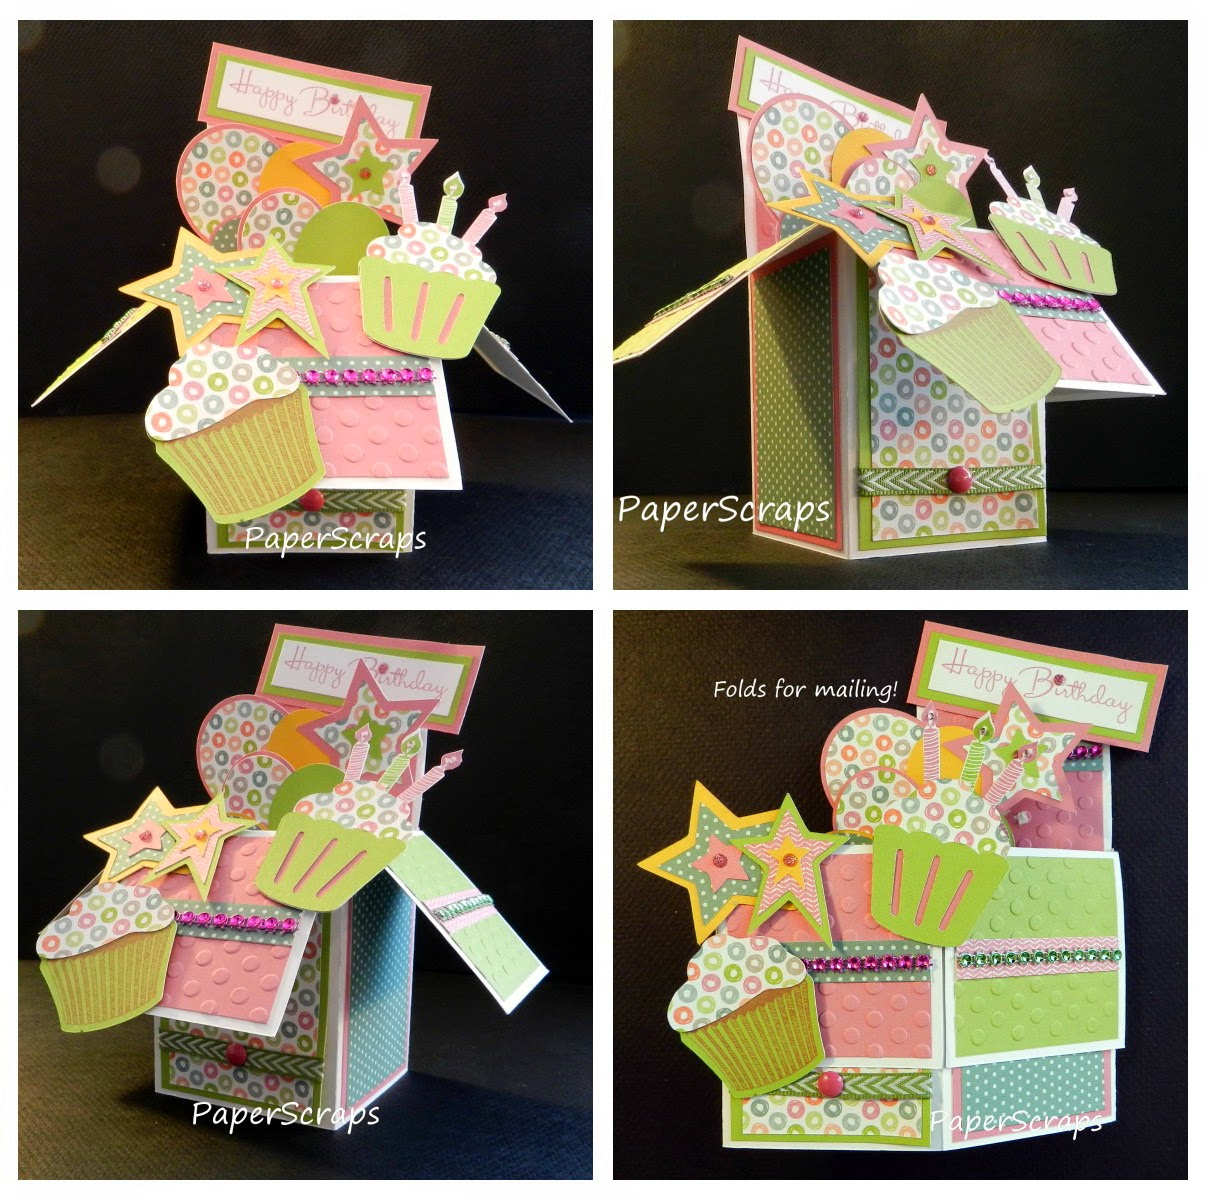 Pattis Close To My Heart PaperScraps Happy Birthday Card in a Box – Box of Birthday Cards